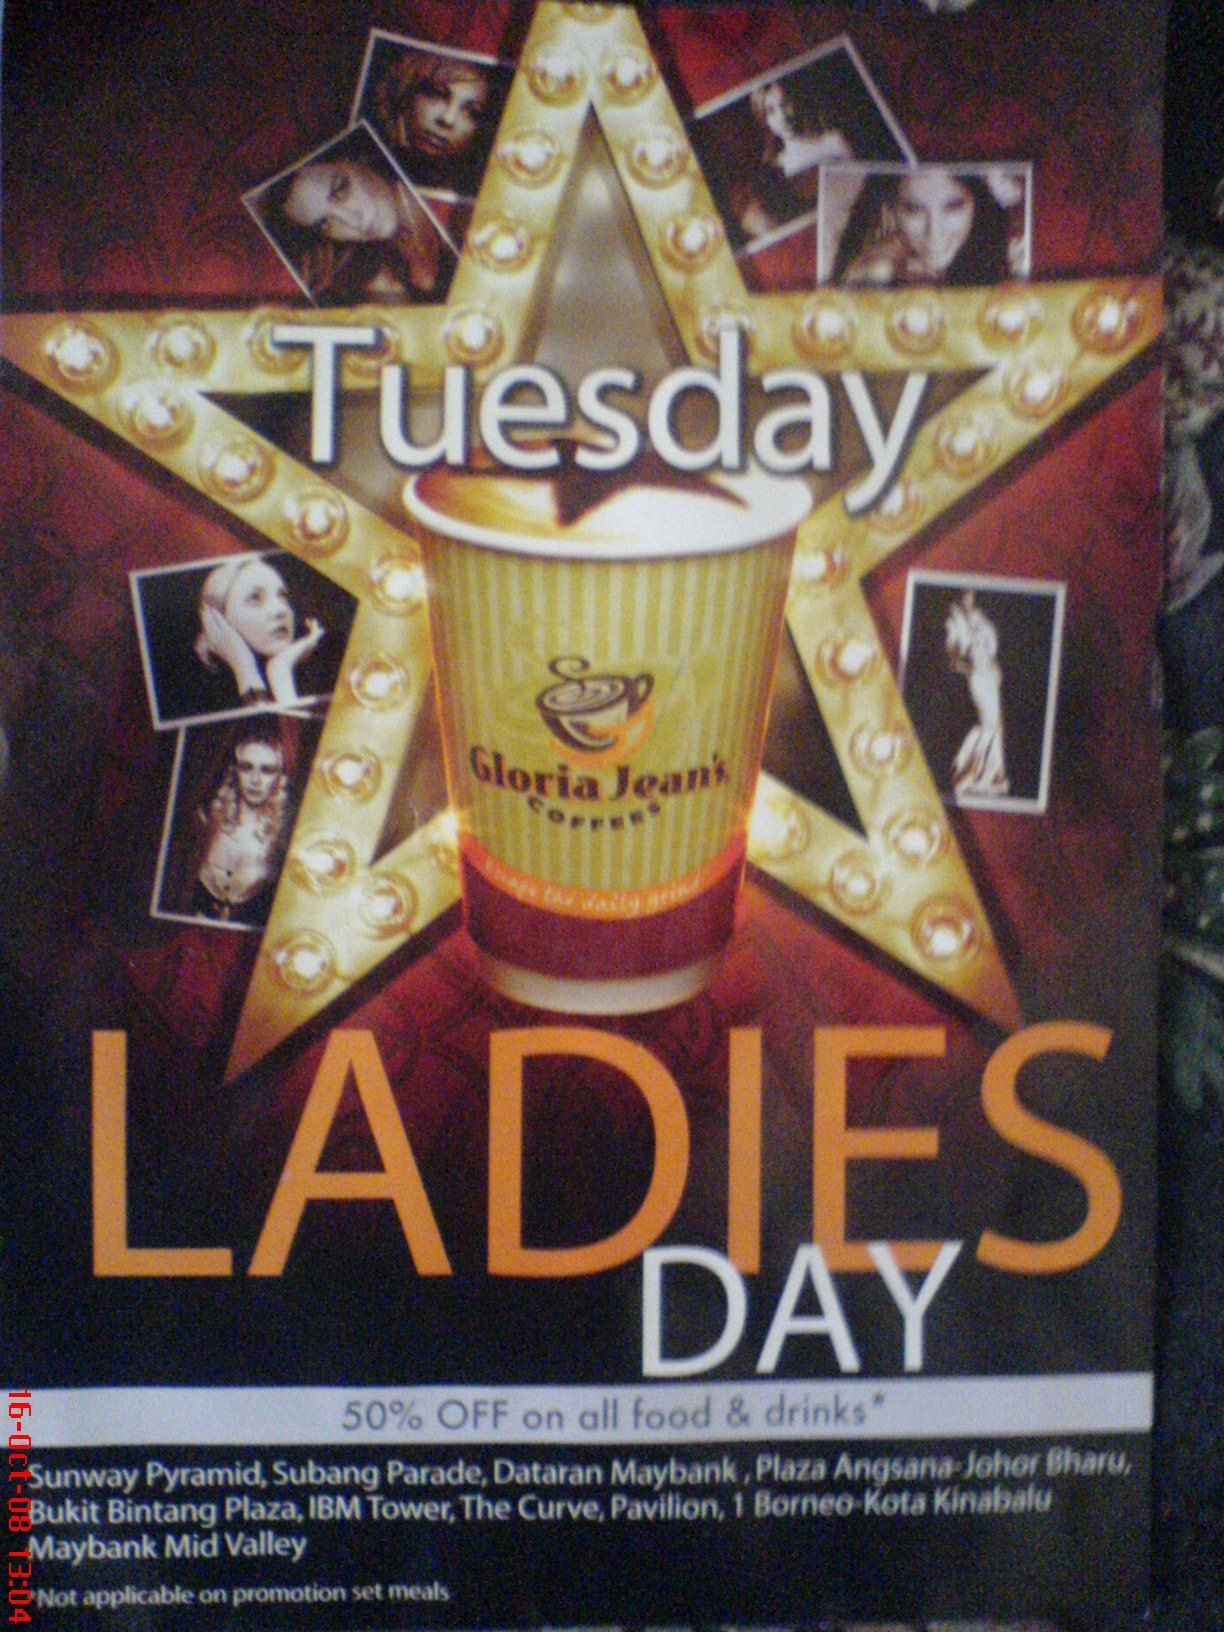 Promotion for ladies